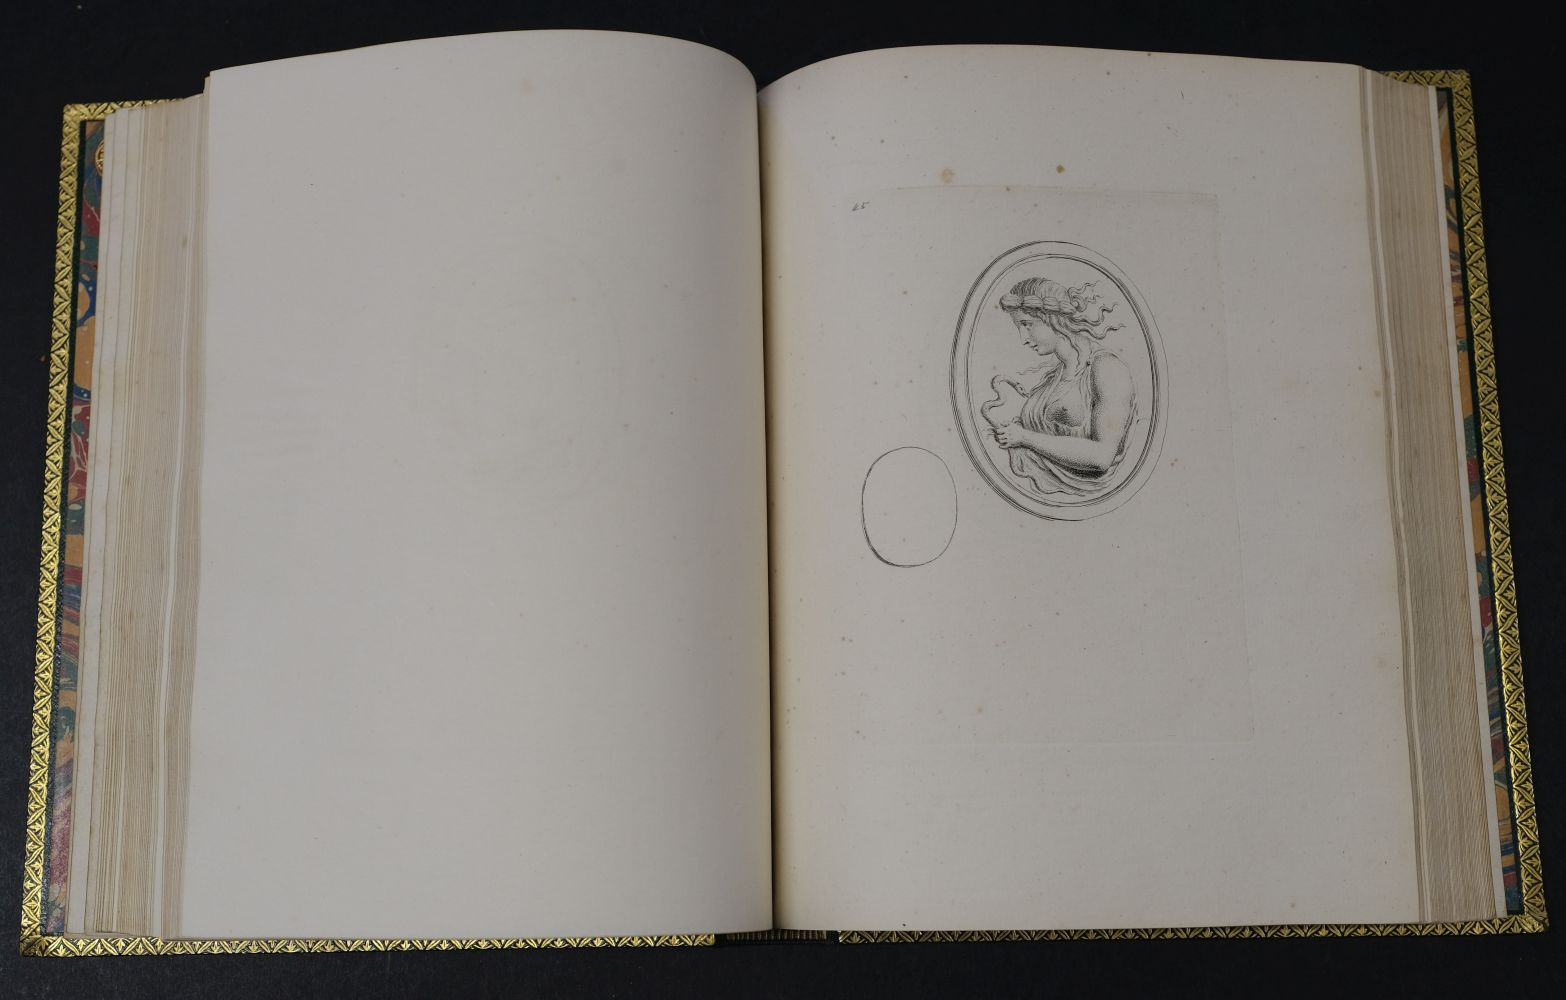 Devonshire Gems. Duke of Devonshire's Collection of Gems, privately printed, circa 1790 - Image 14 of 16